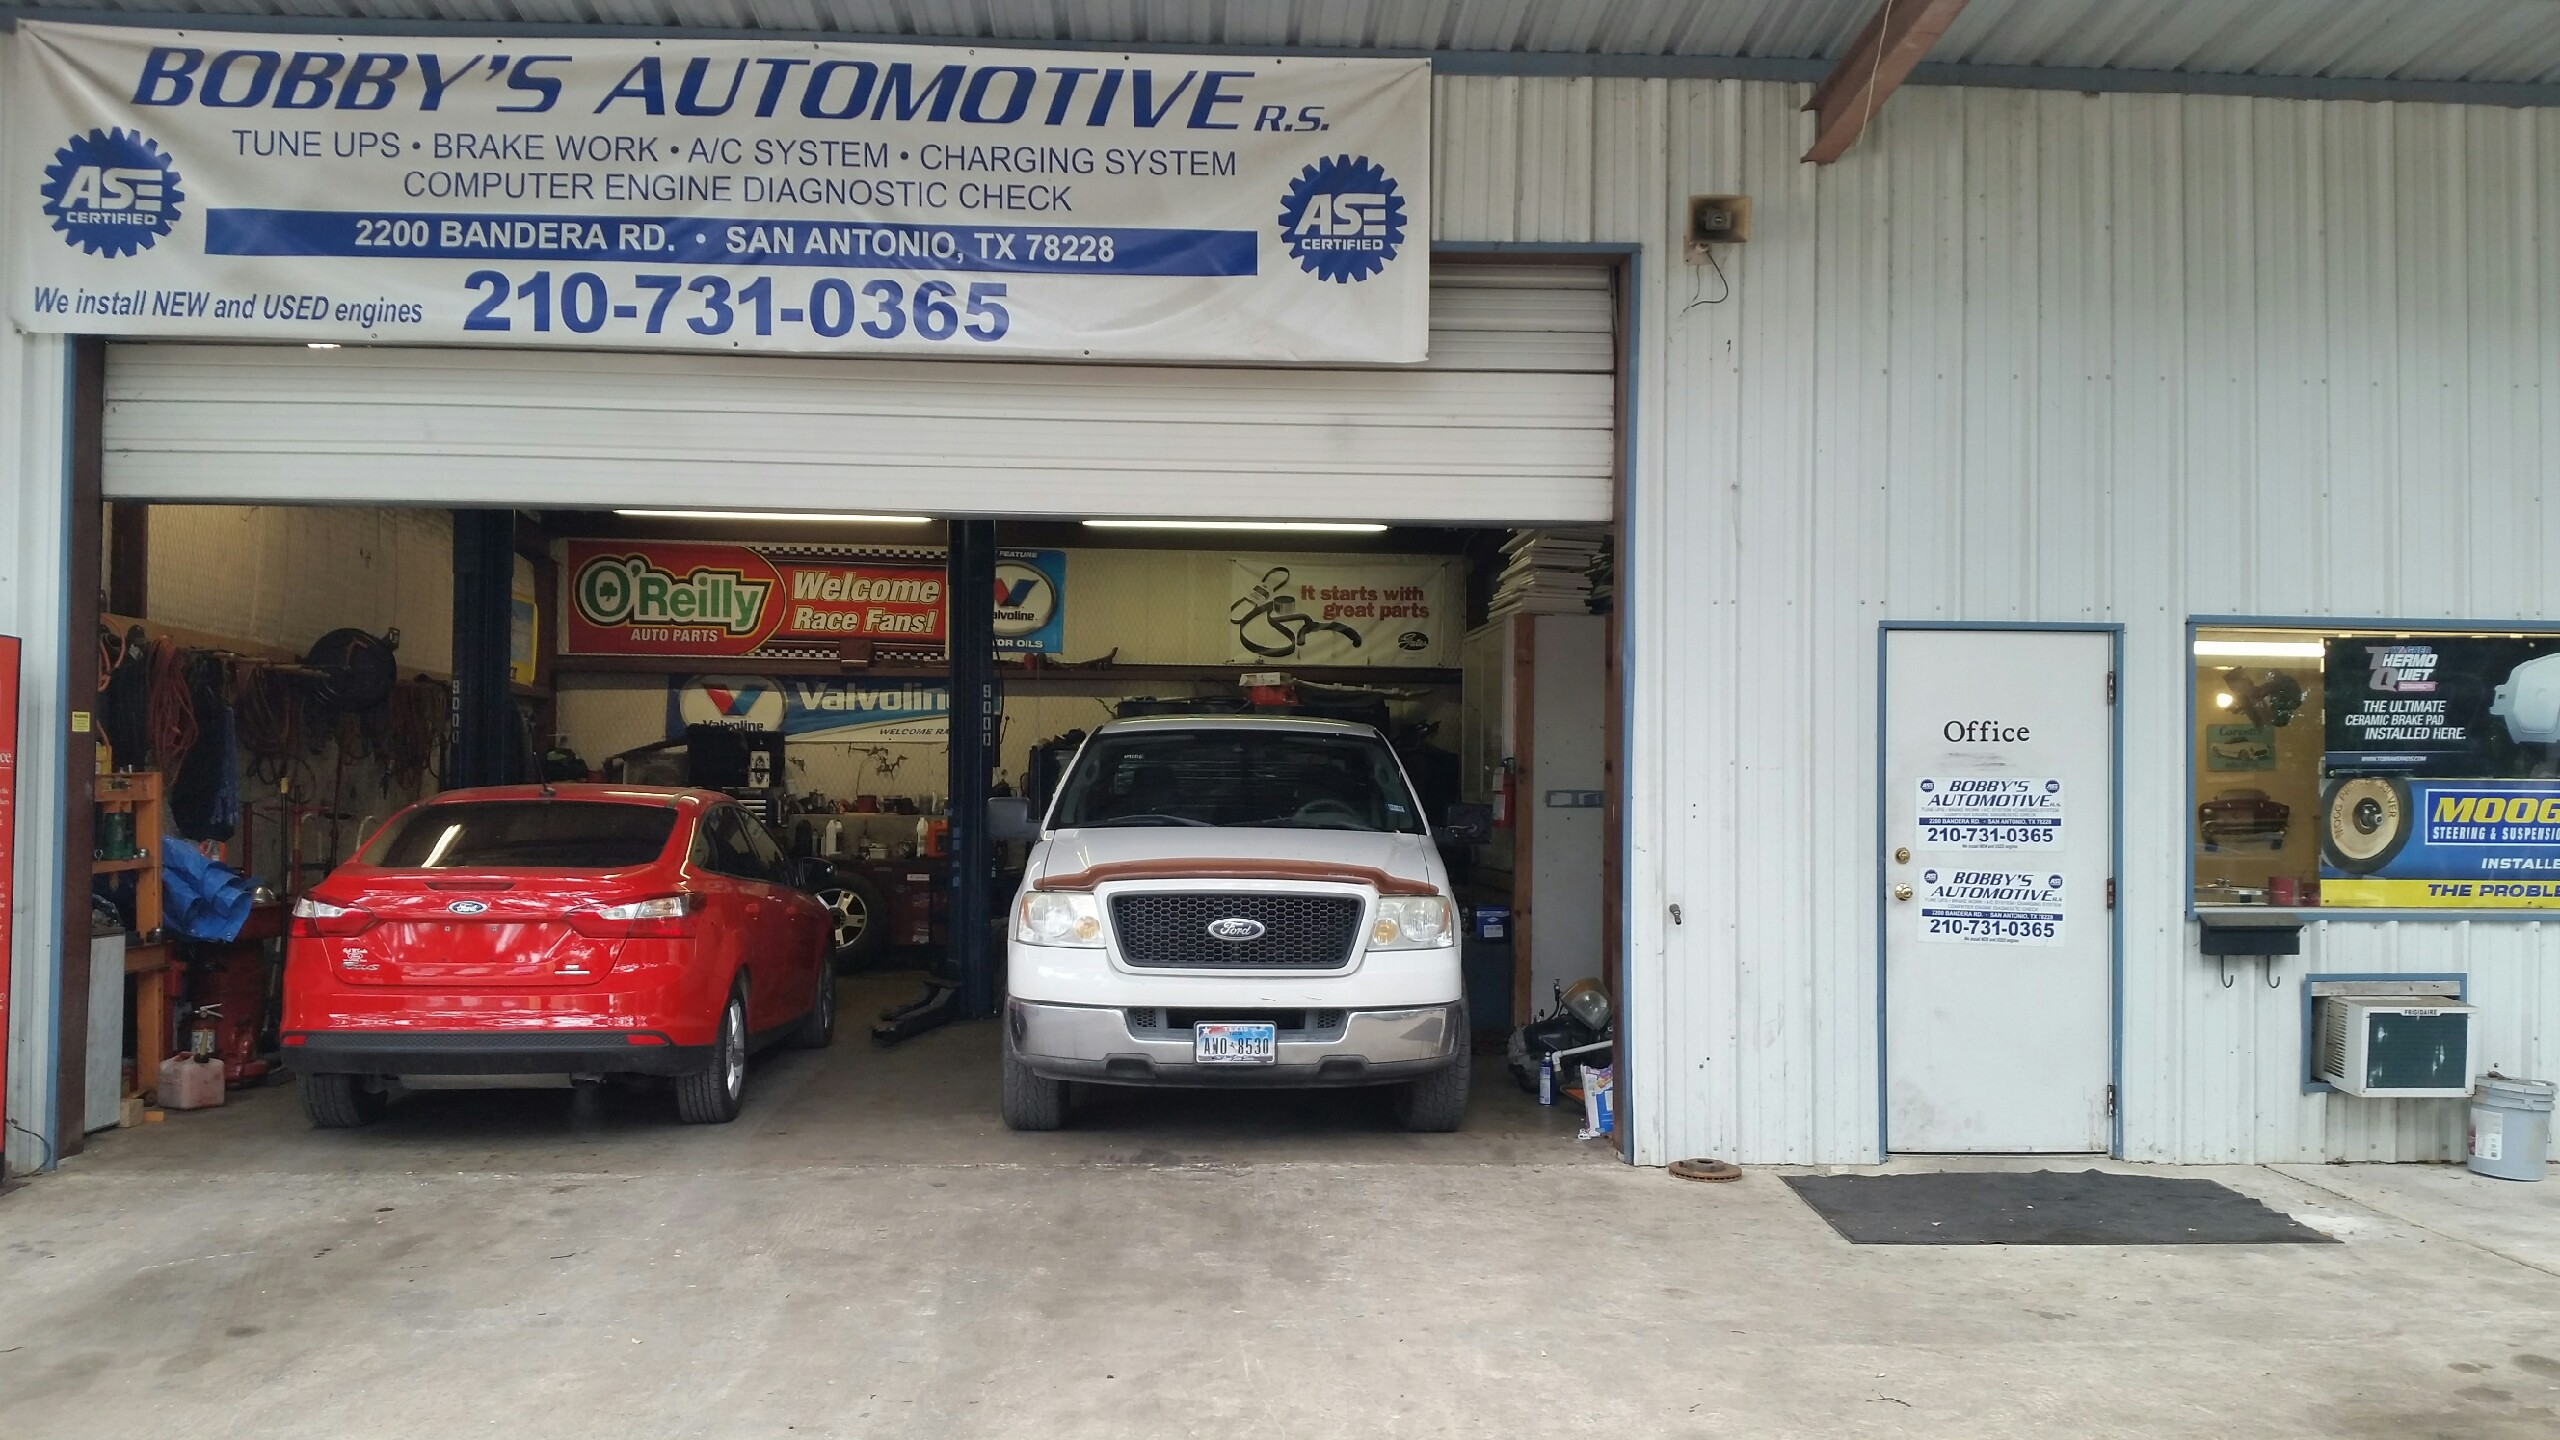 Bobby's Automotive